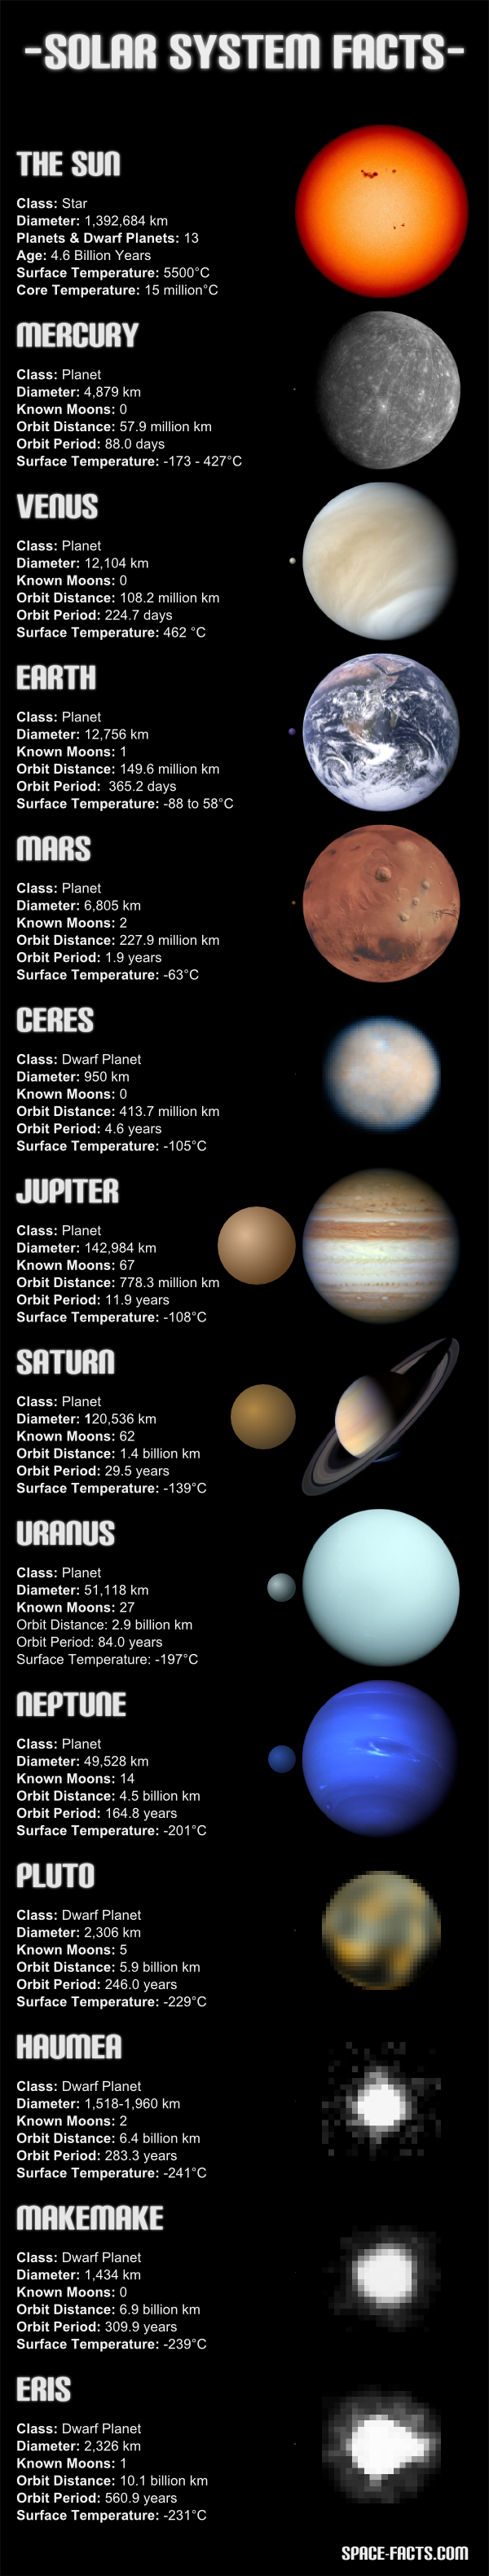 Solar System Facts (page 4) - Pics about space